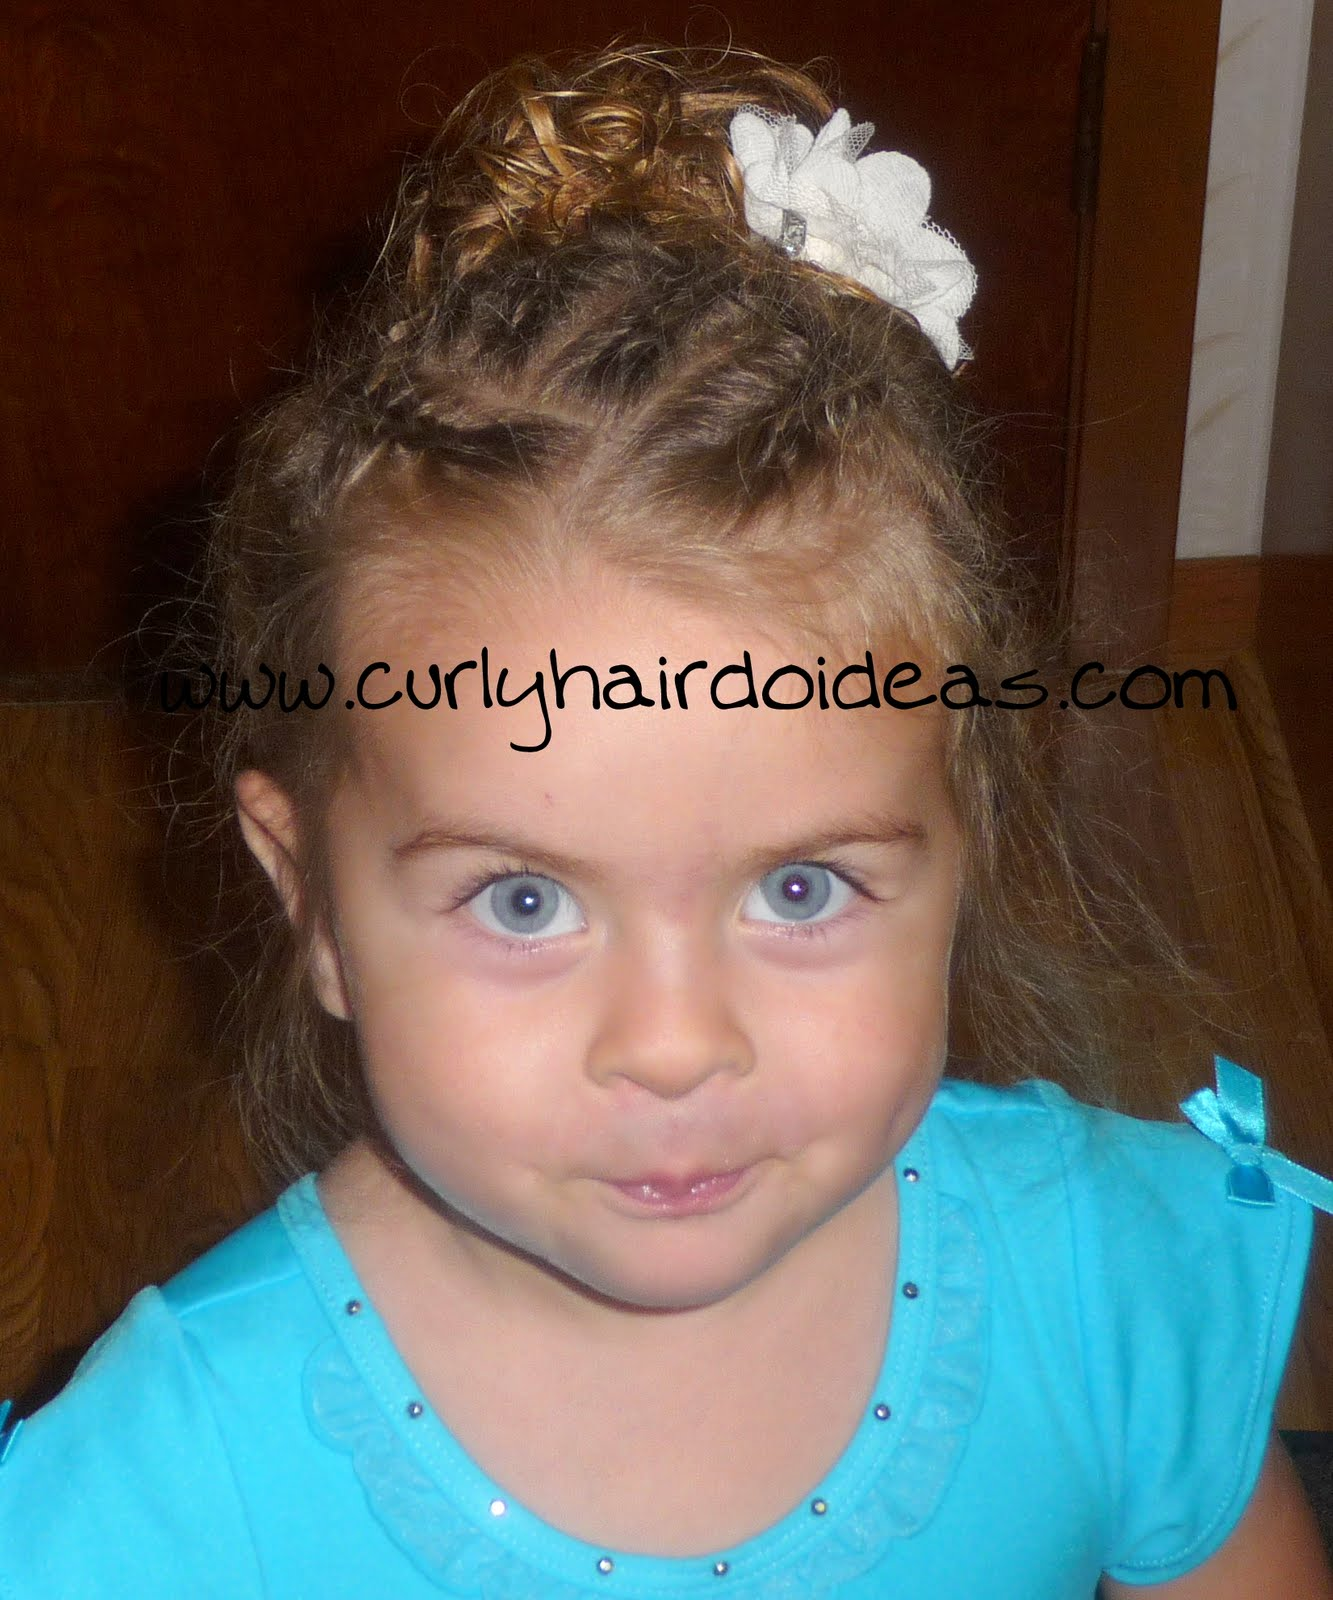 Pleasing Curly Hairdo Ideas Toddler Hairstyle For Dance Class Hairstyles For Women Draintrainus